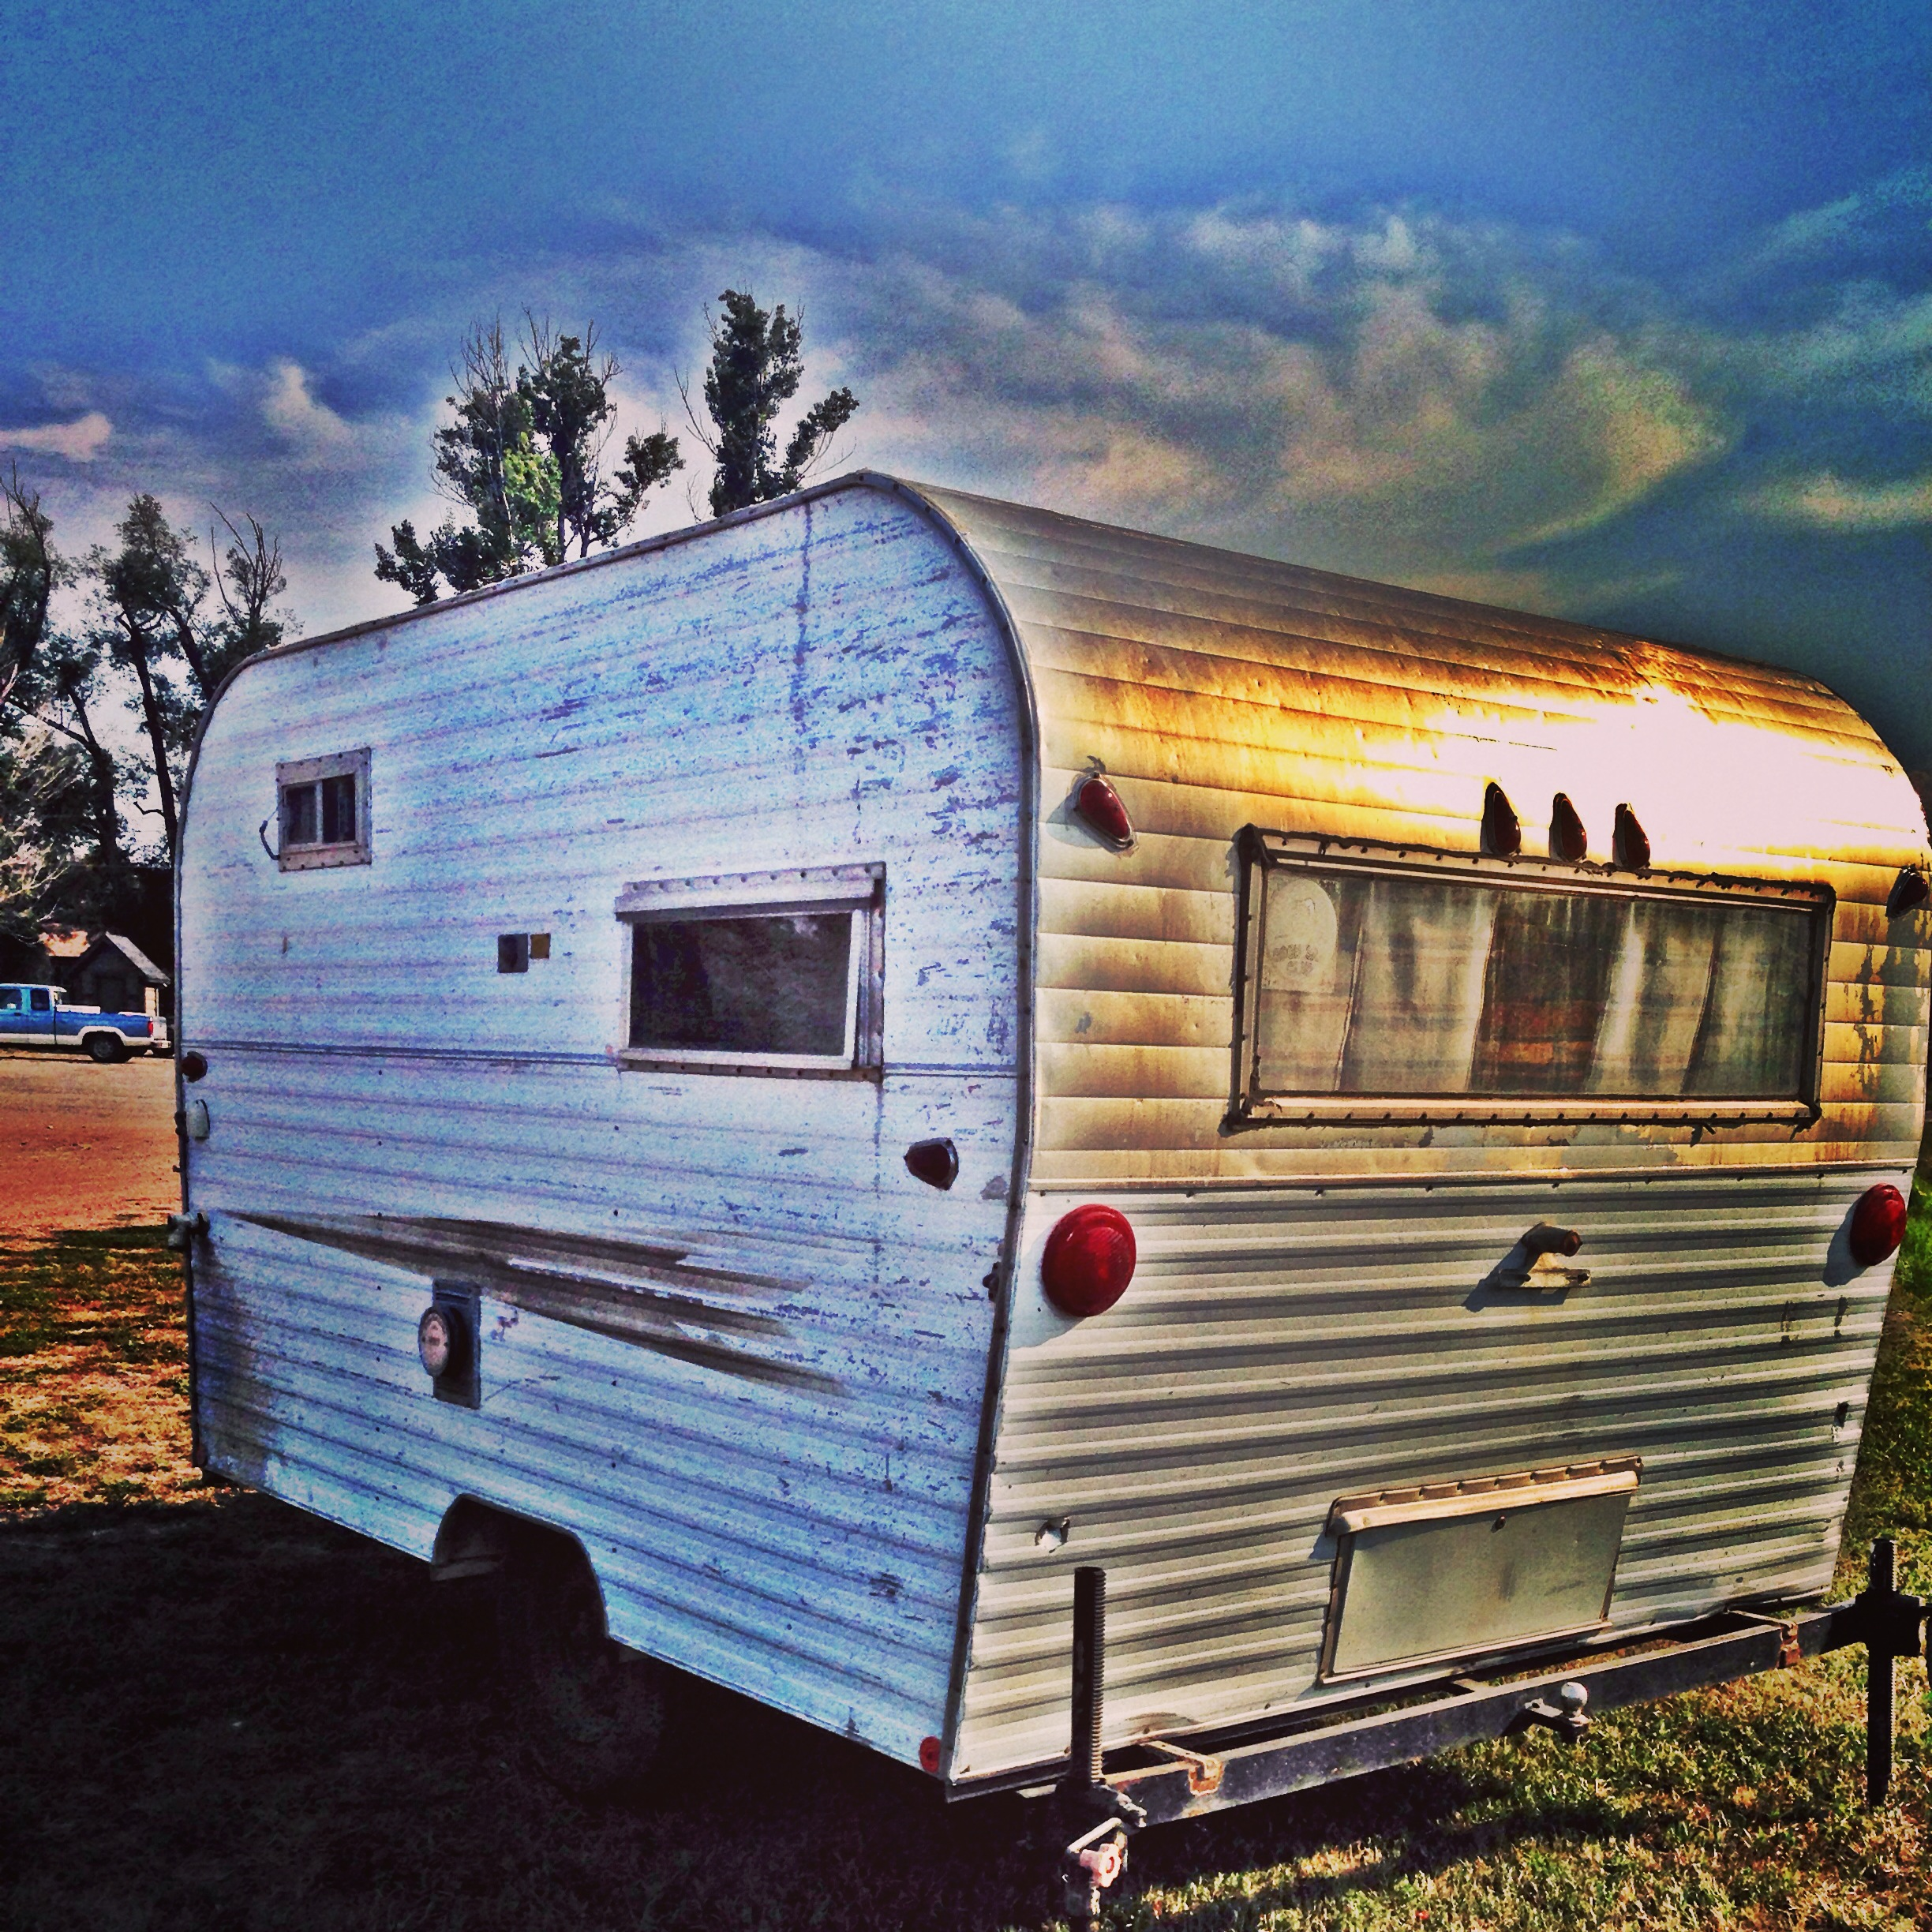 Travel Campers: Renovating A Vintage 1969 RoadRunner Travel Trailer